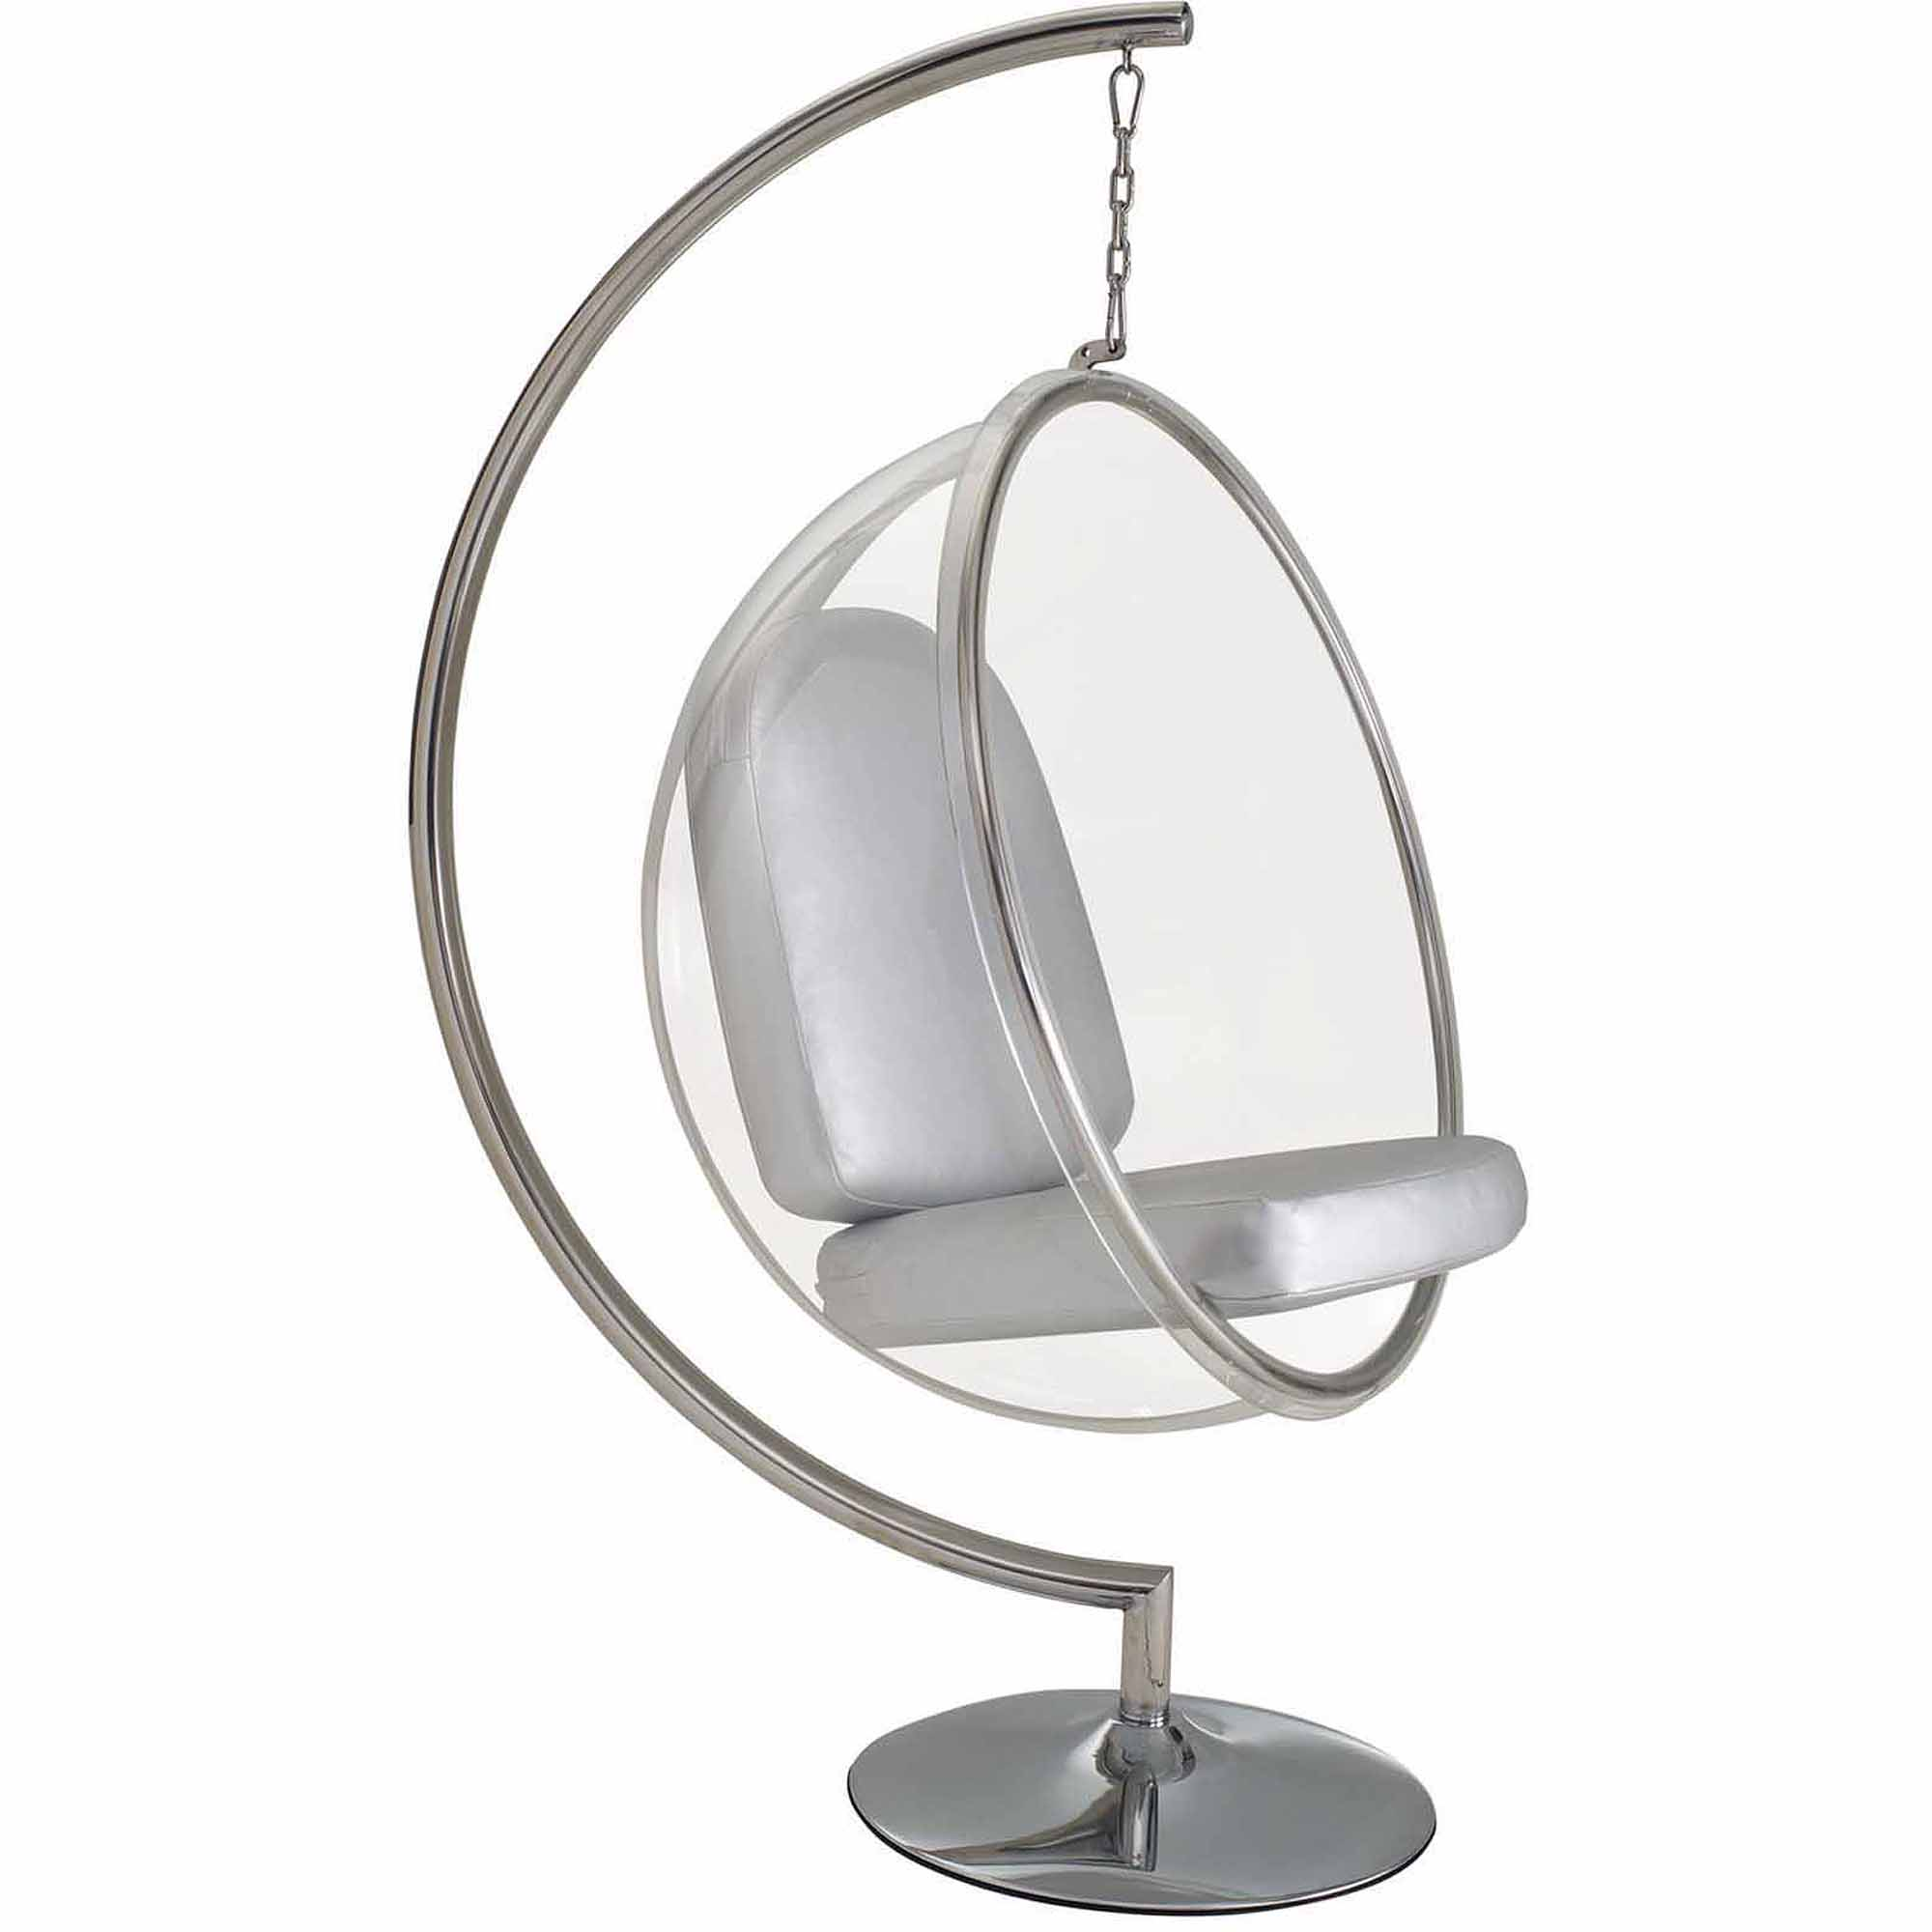 Modway Ring Lounge Chair, Multiple Colors   Walmart.com